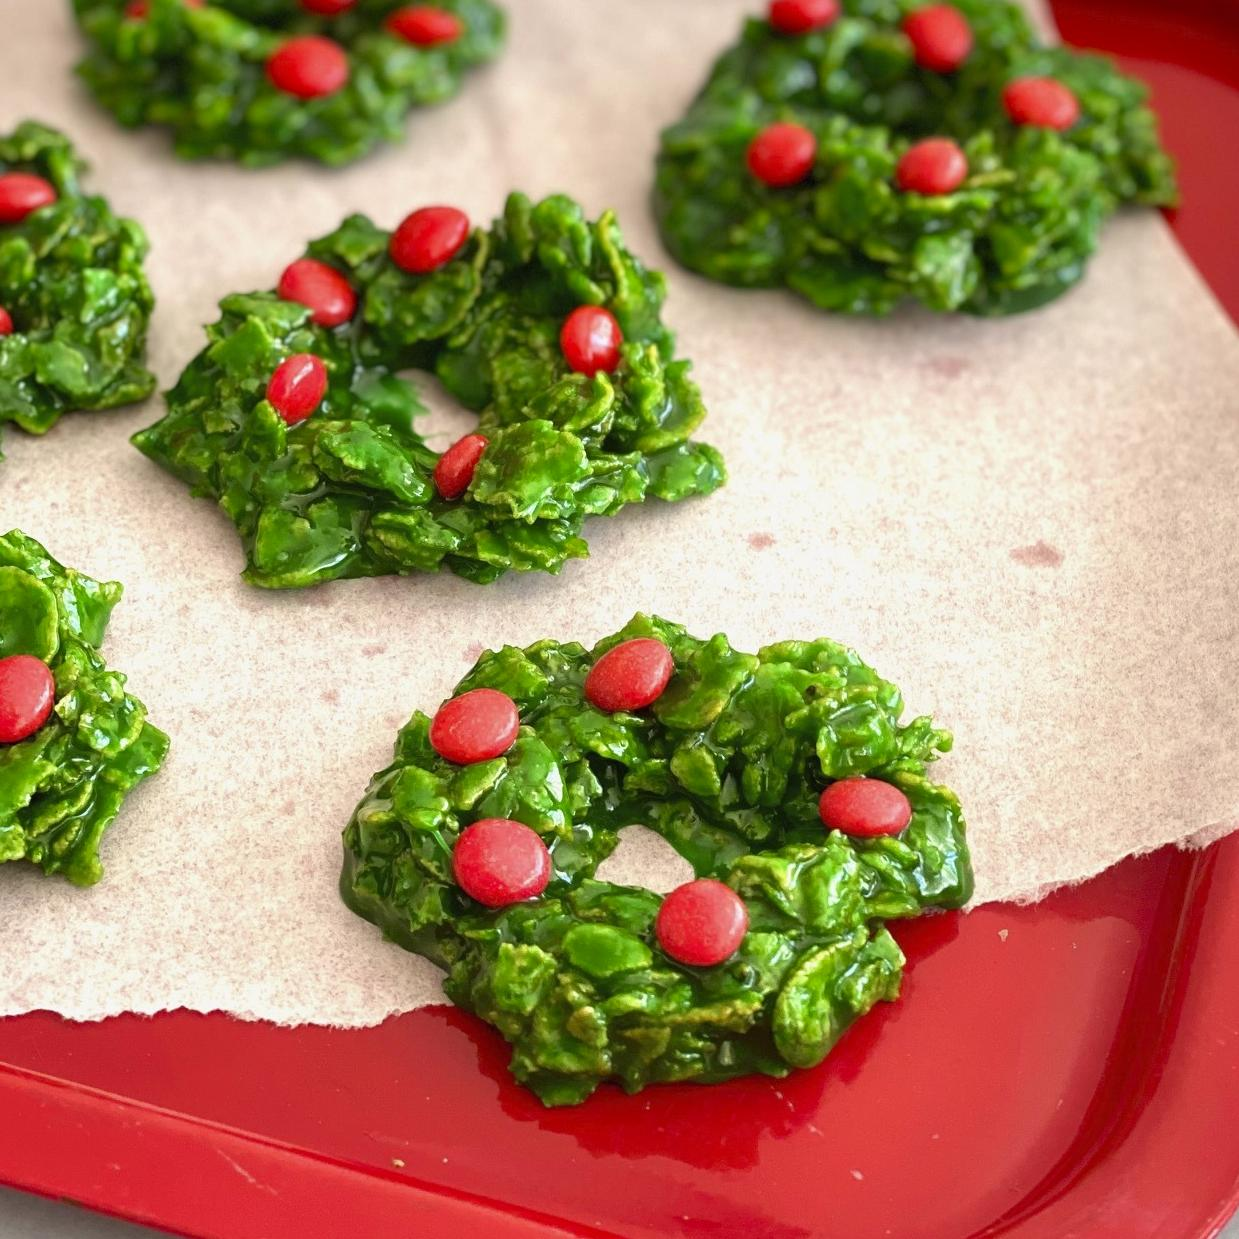 Six Christmas wreath cookies on a red tray.